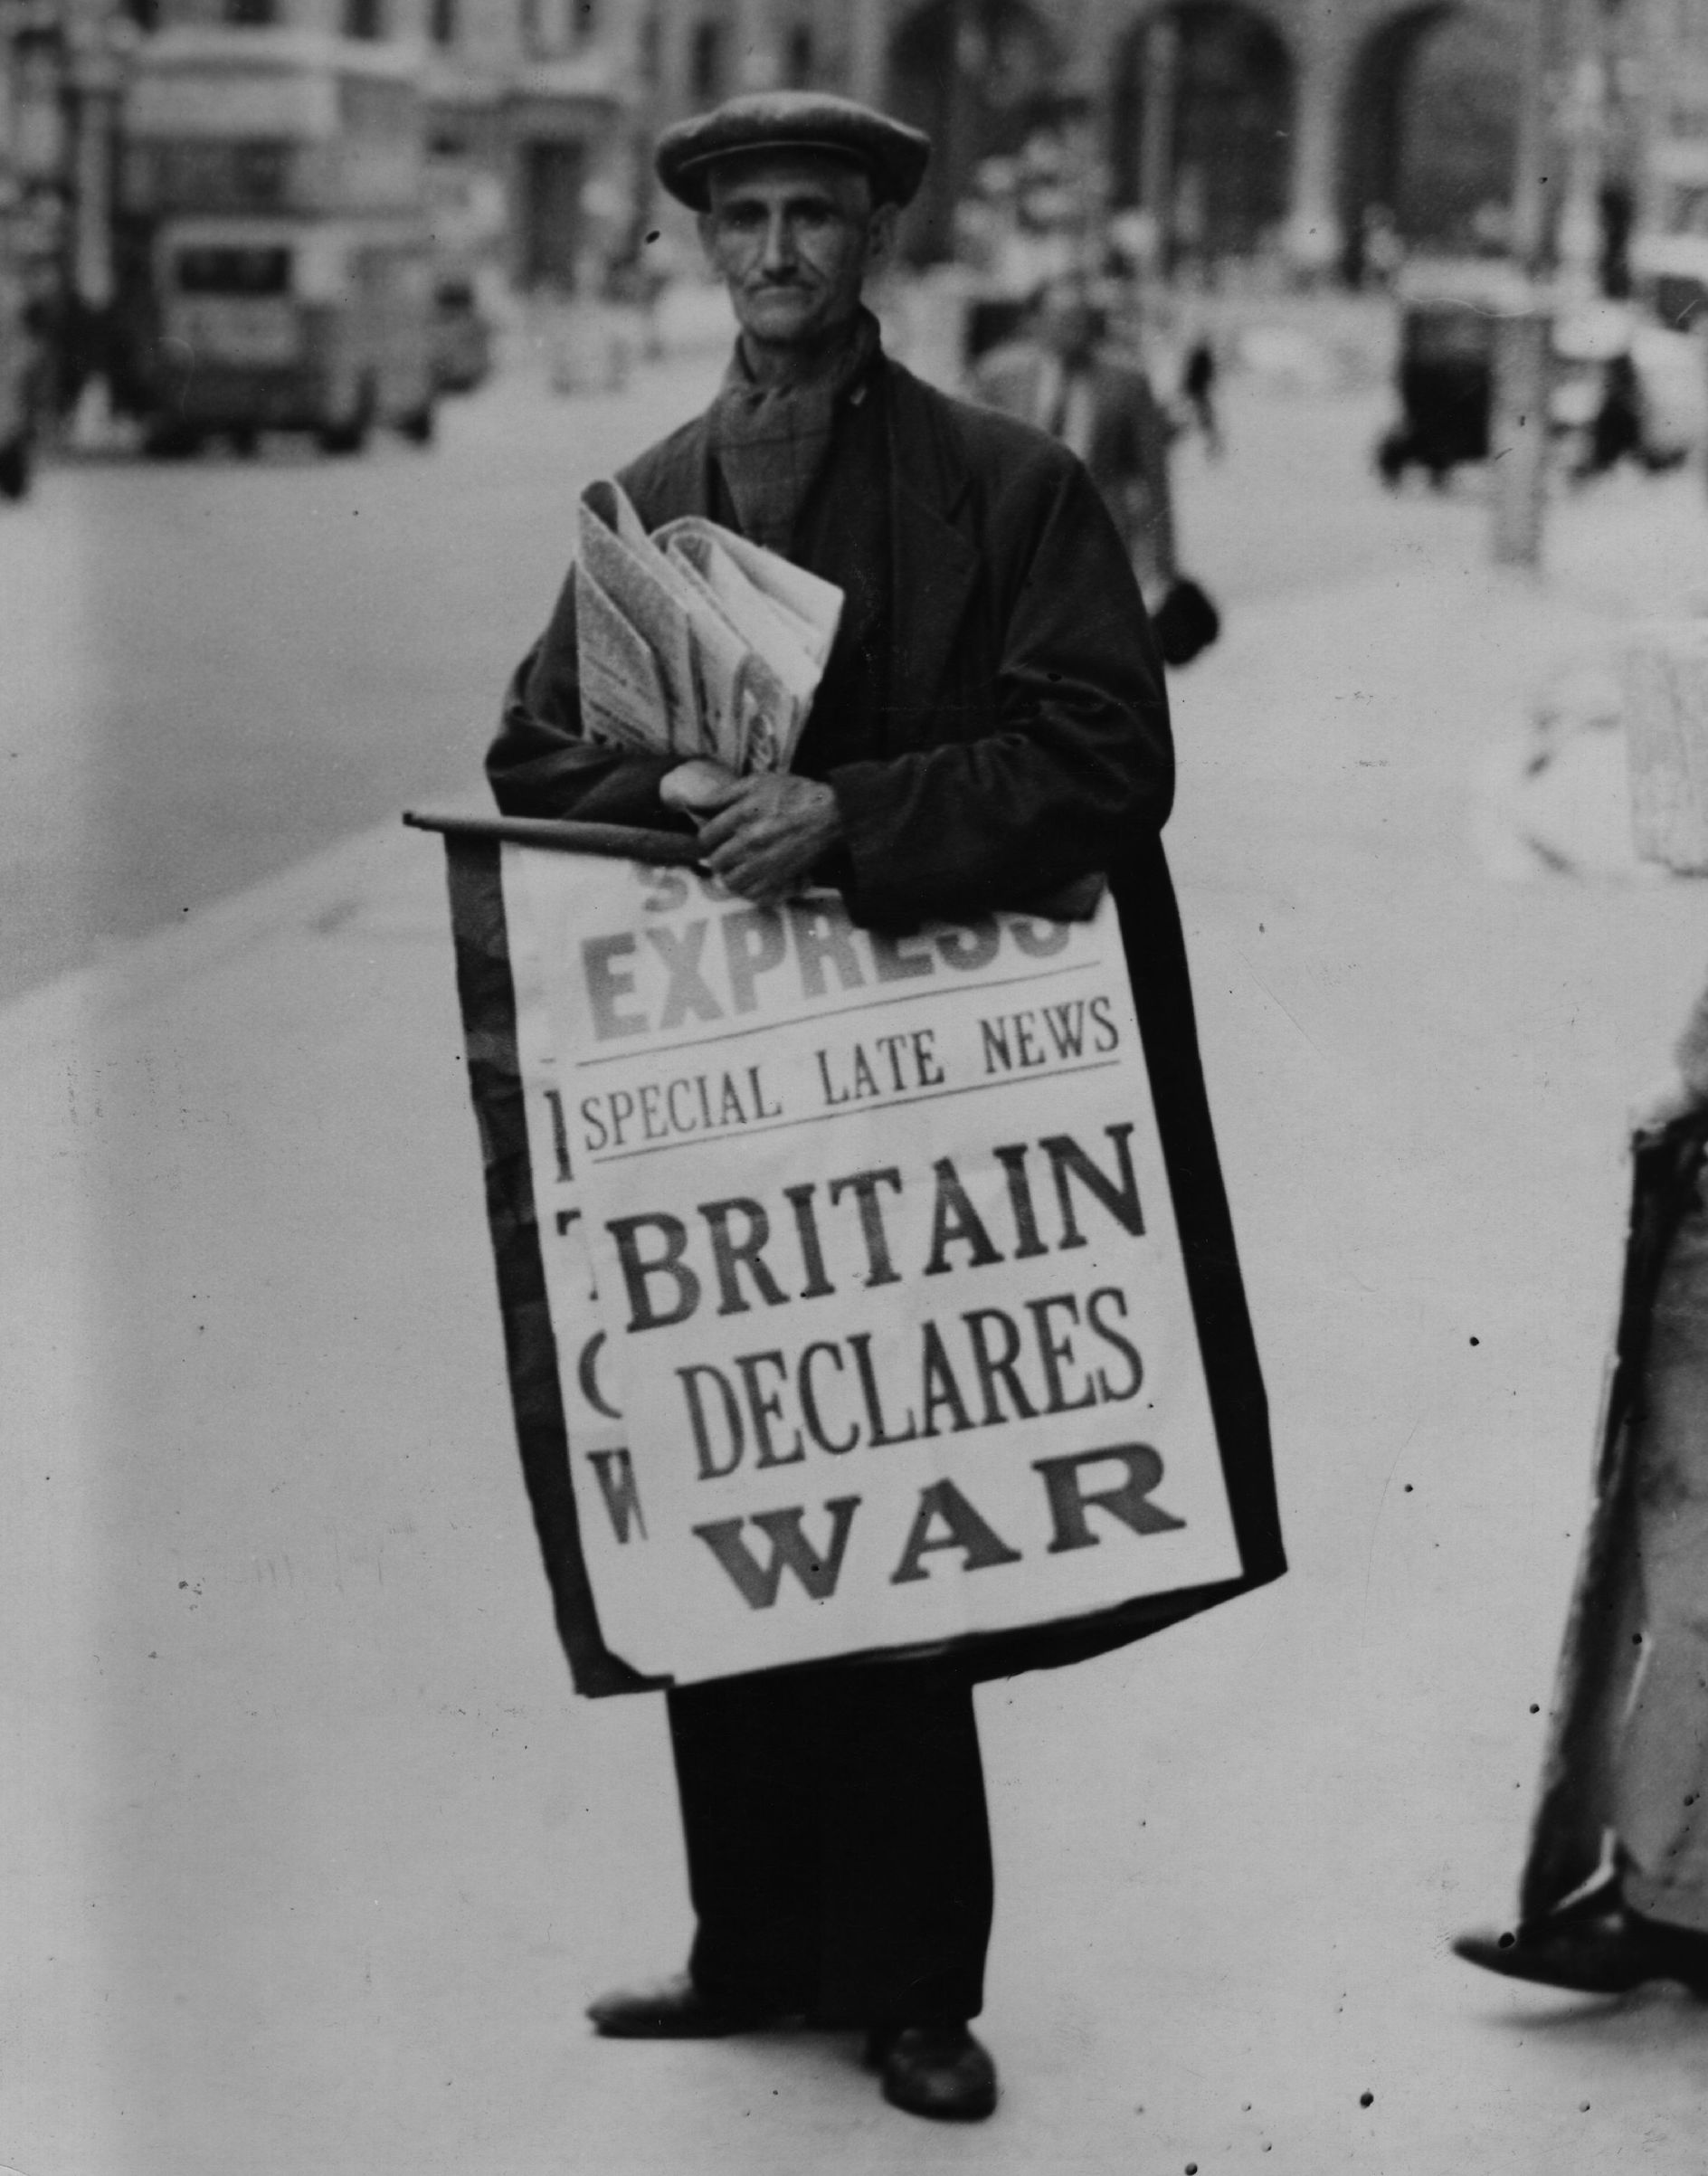 A newspaper seller carries a hoarding pronouncing the declaration of war between Britain and Germany, on the Strand, heading towards Admiralty Arch in London on Aug. 1, 1939.